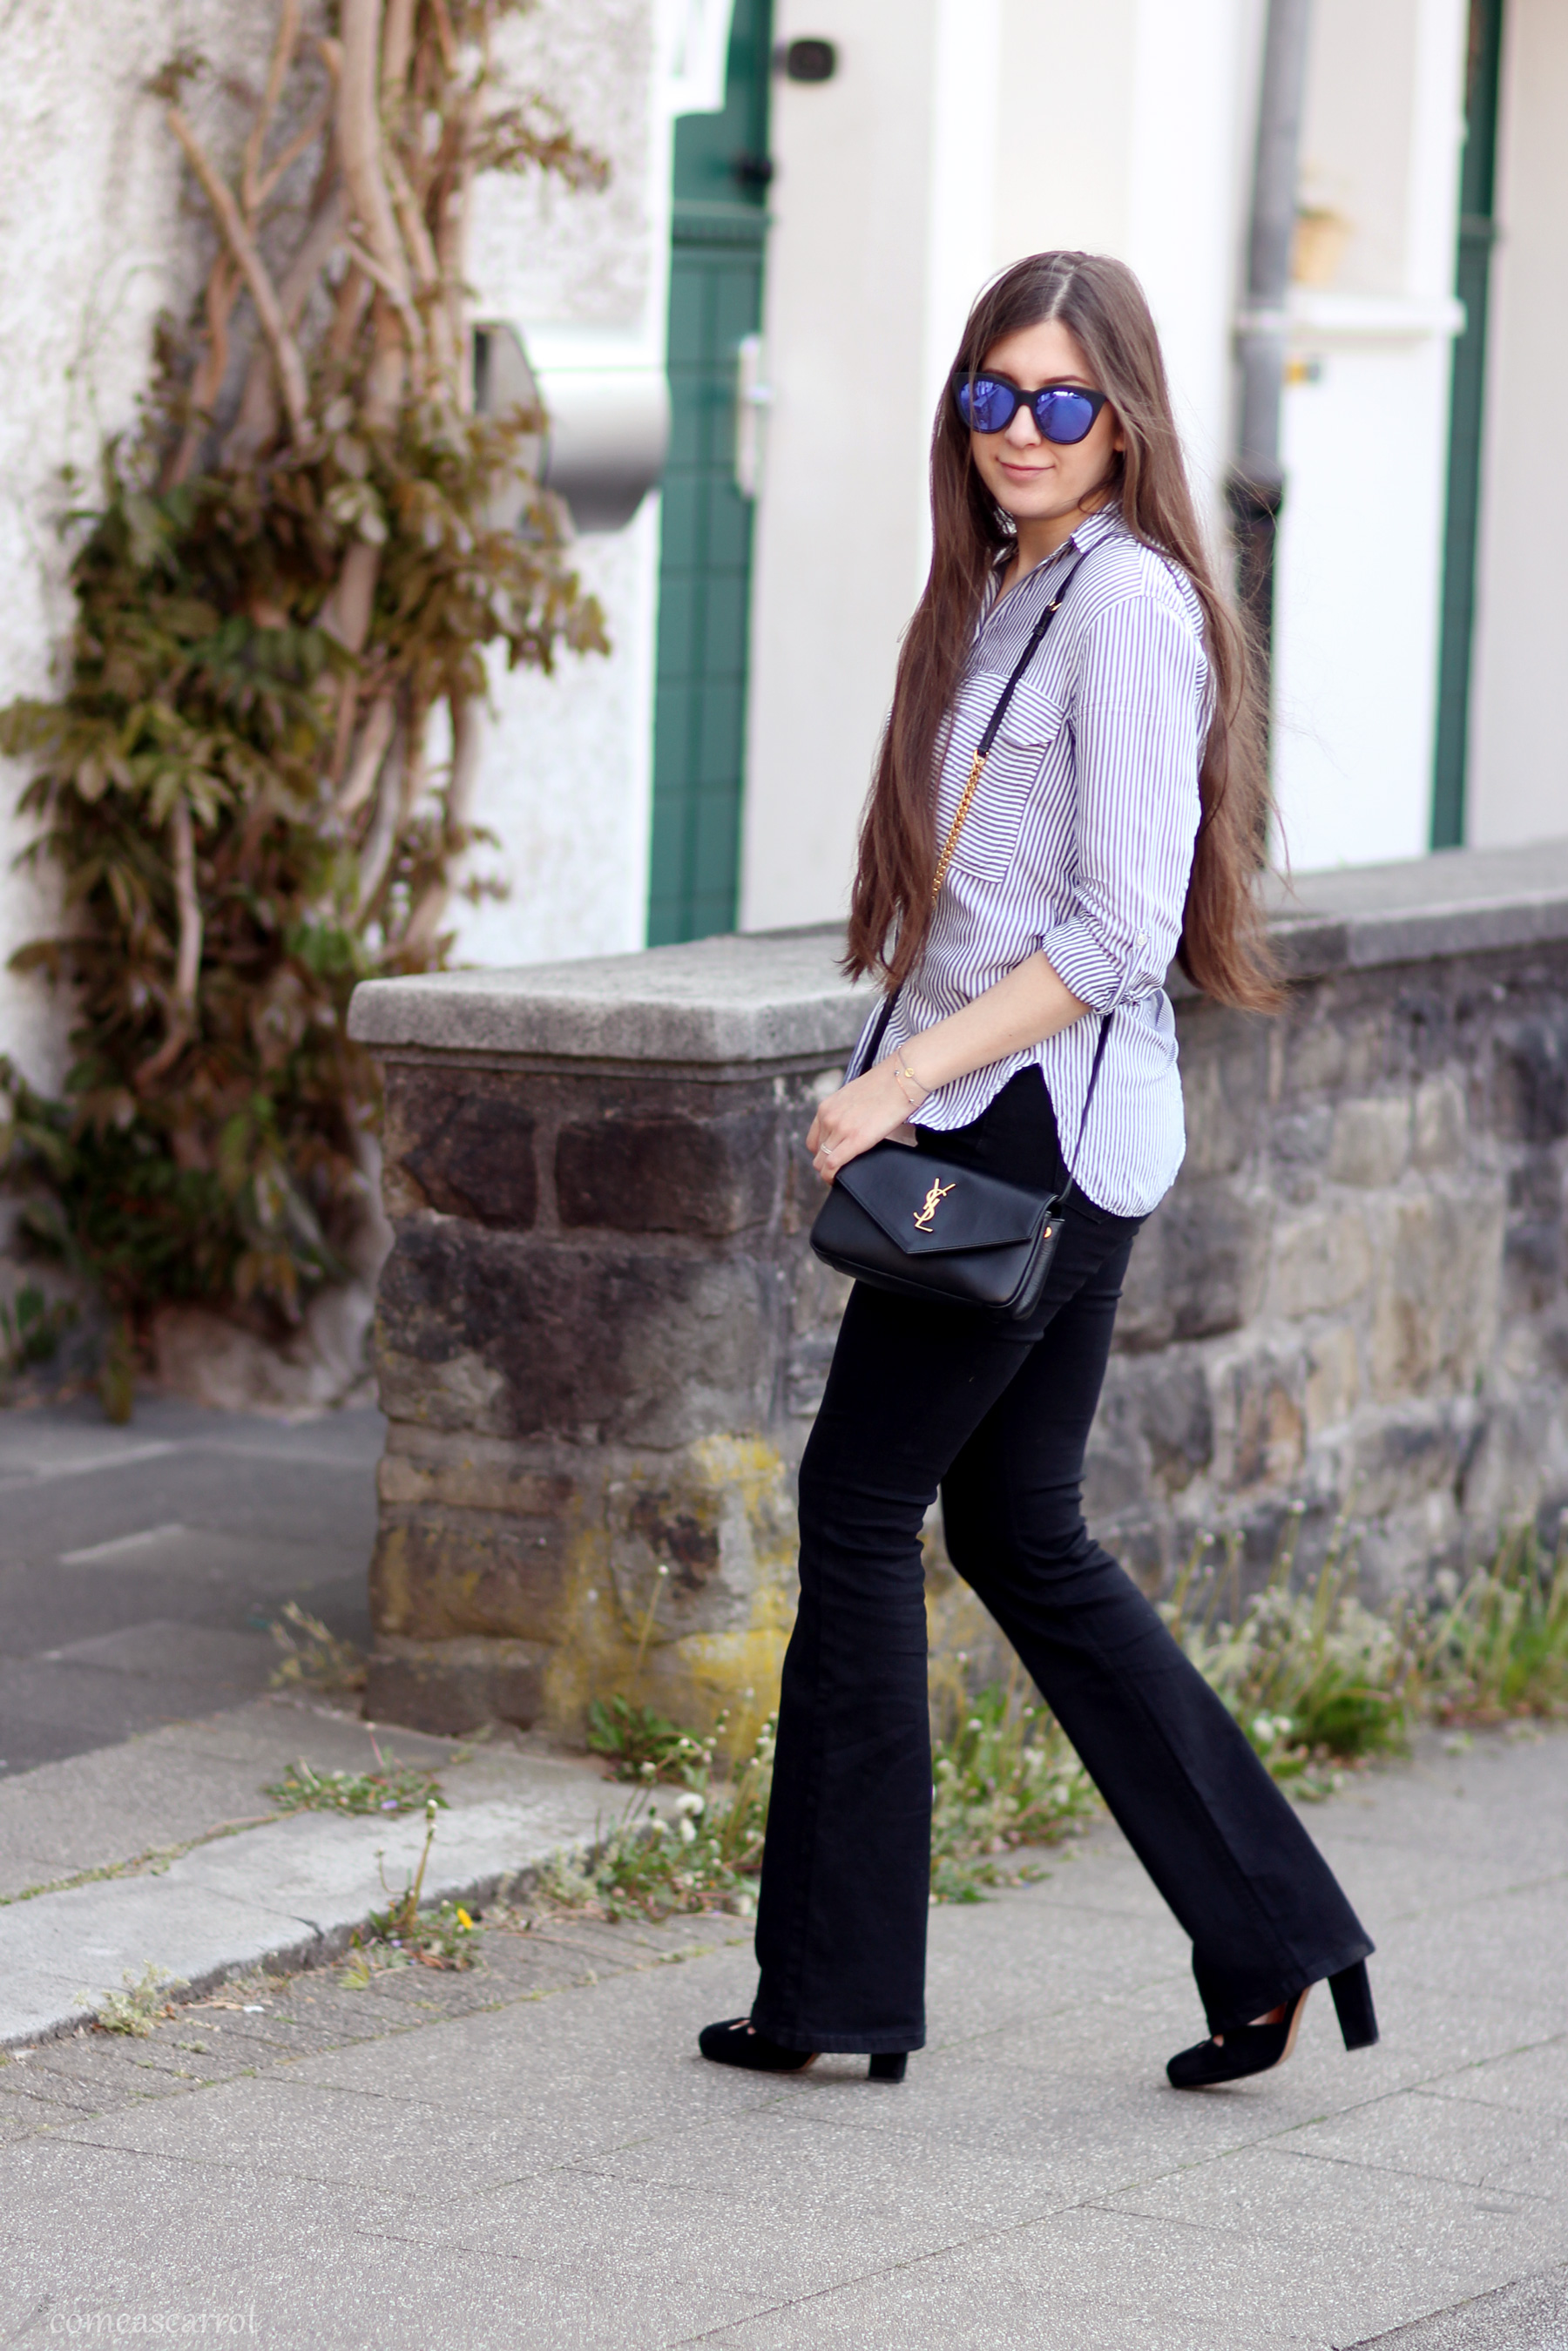 outfit, yves saint laurent, saint laurent, envelope bag, ysl, flared pants, jeans, margarethenhöhe, fashionblogger, fashionblog, deutschland, germany, blogger, fashion blog essen, ruhrgebiet, bally, heels